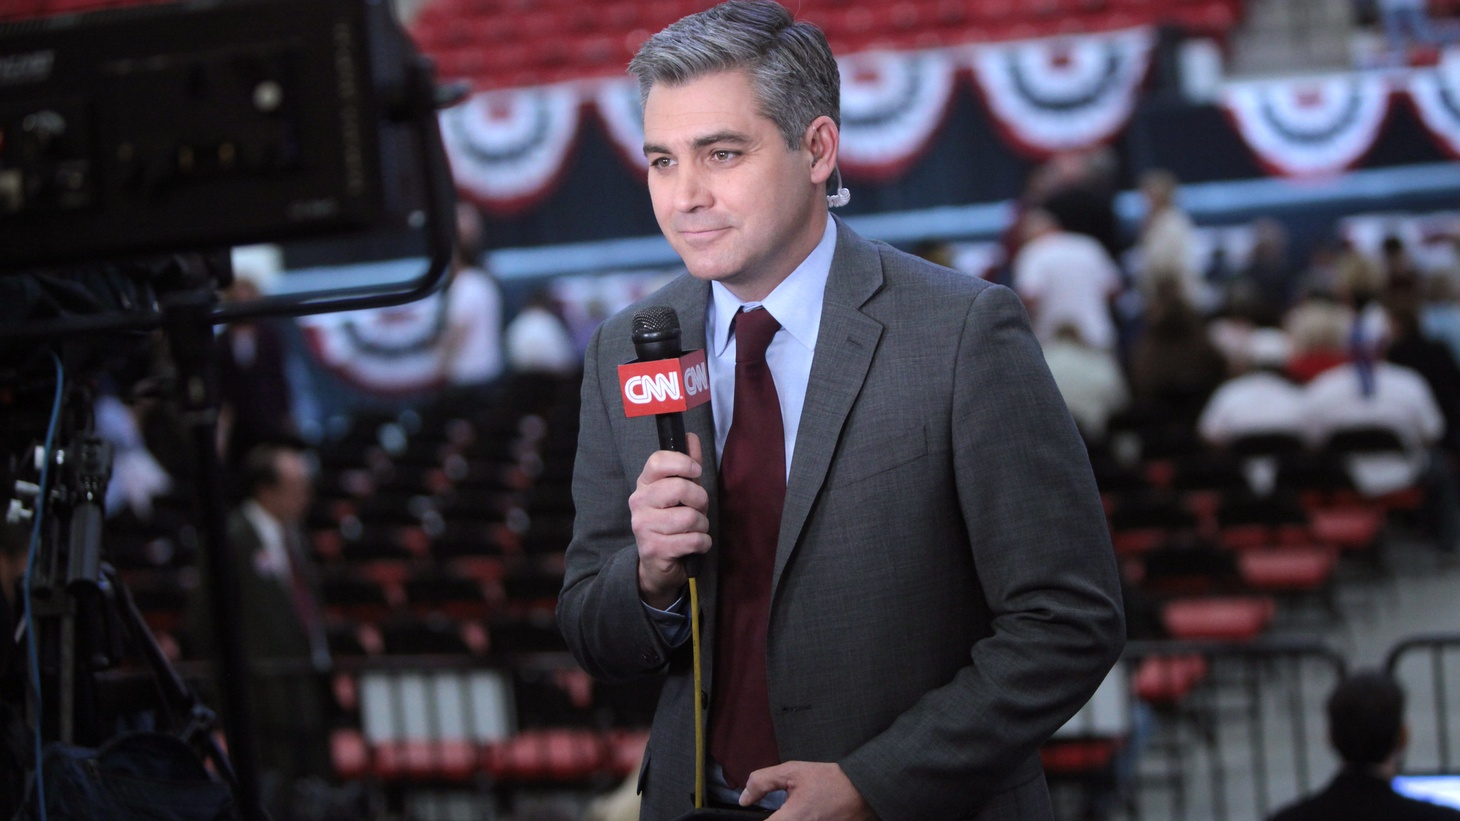 Jim Acosta speaking at a campaign rally for Donald Trump at the South Point Arena in Las Vegas, Nevada.